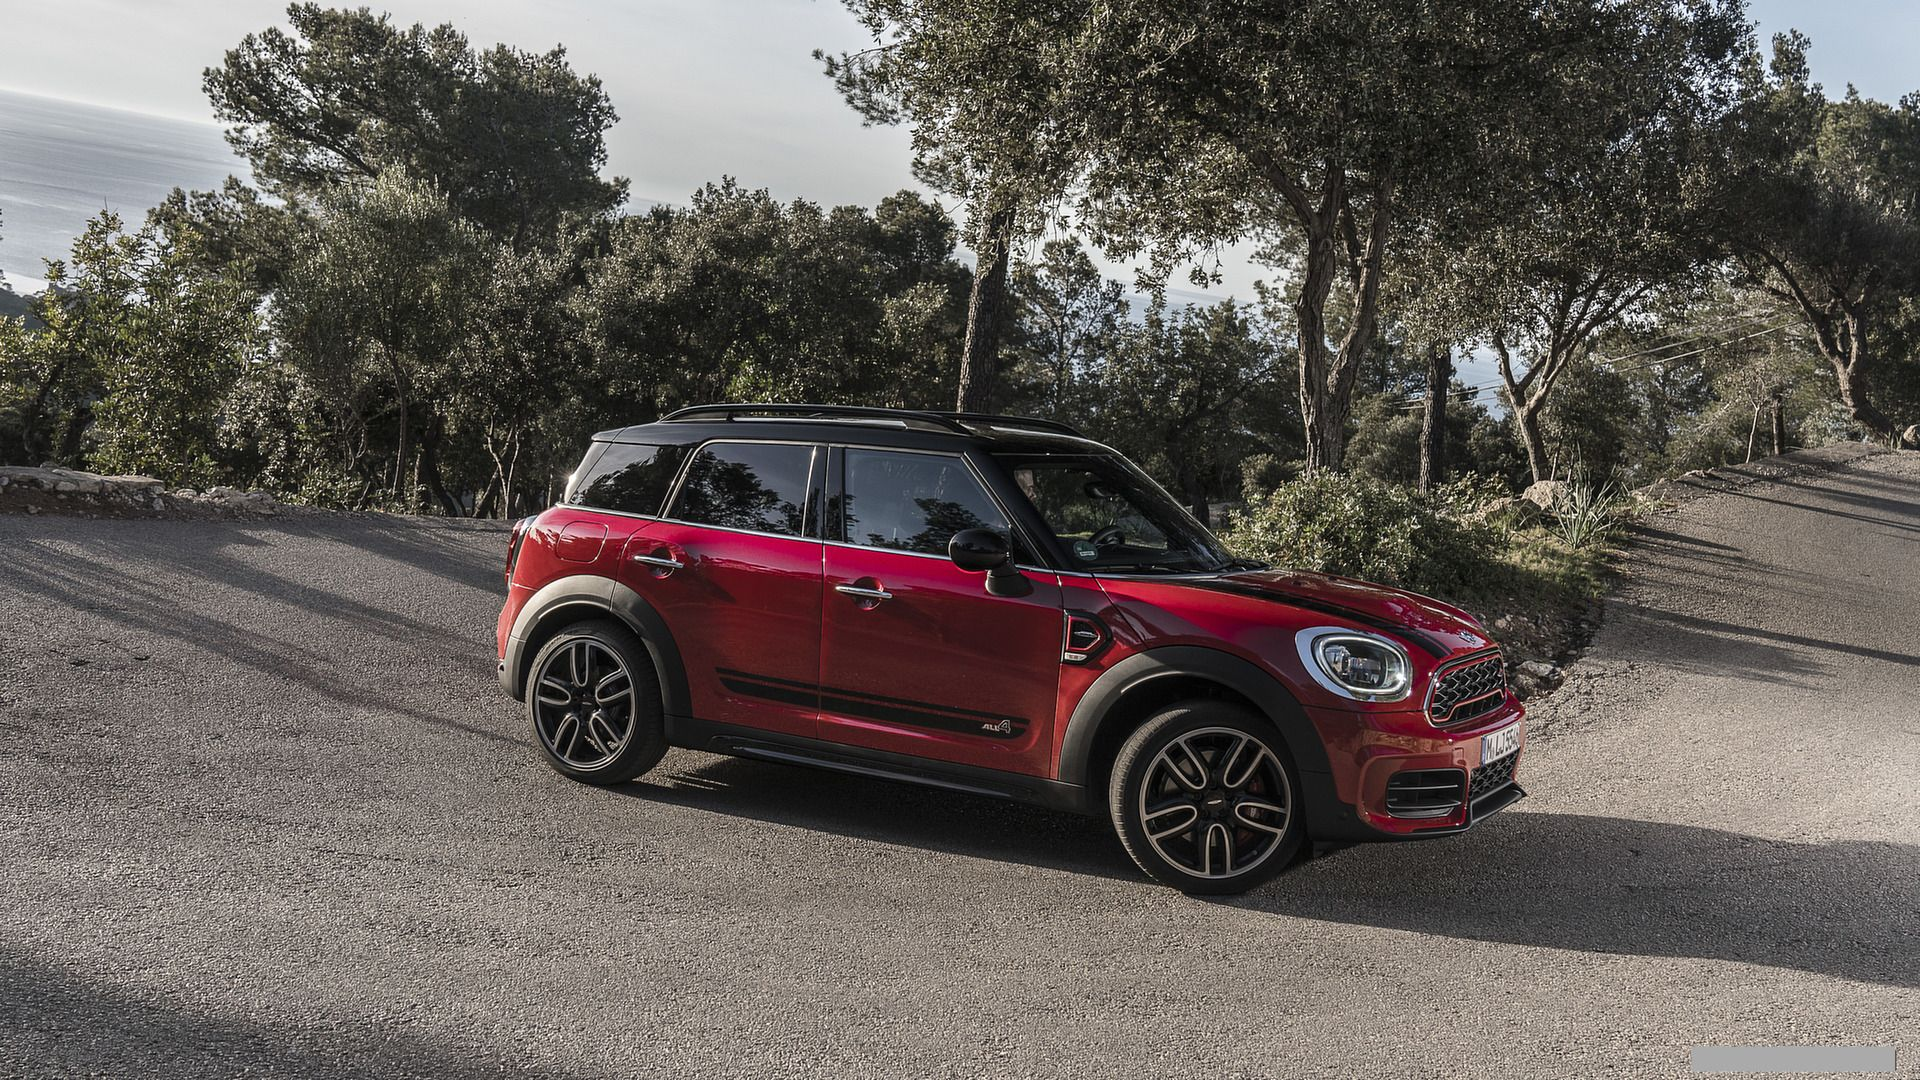 mini cooper countryman all 4 john cooper works 16, hire , rent , location , alquiler , aluguel, Verleih , kiralık , kiralama , прокат , 聘请 , 僦 , לחכור - ParisLuxuryCar, paris, luxury